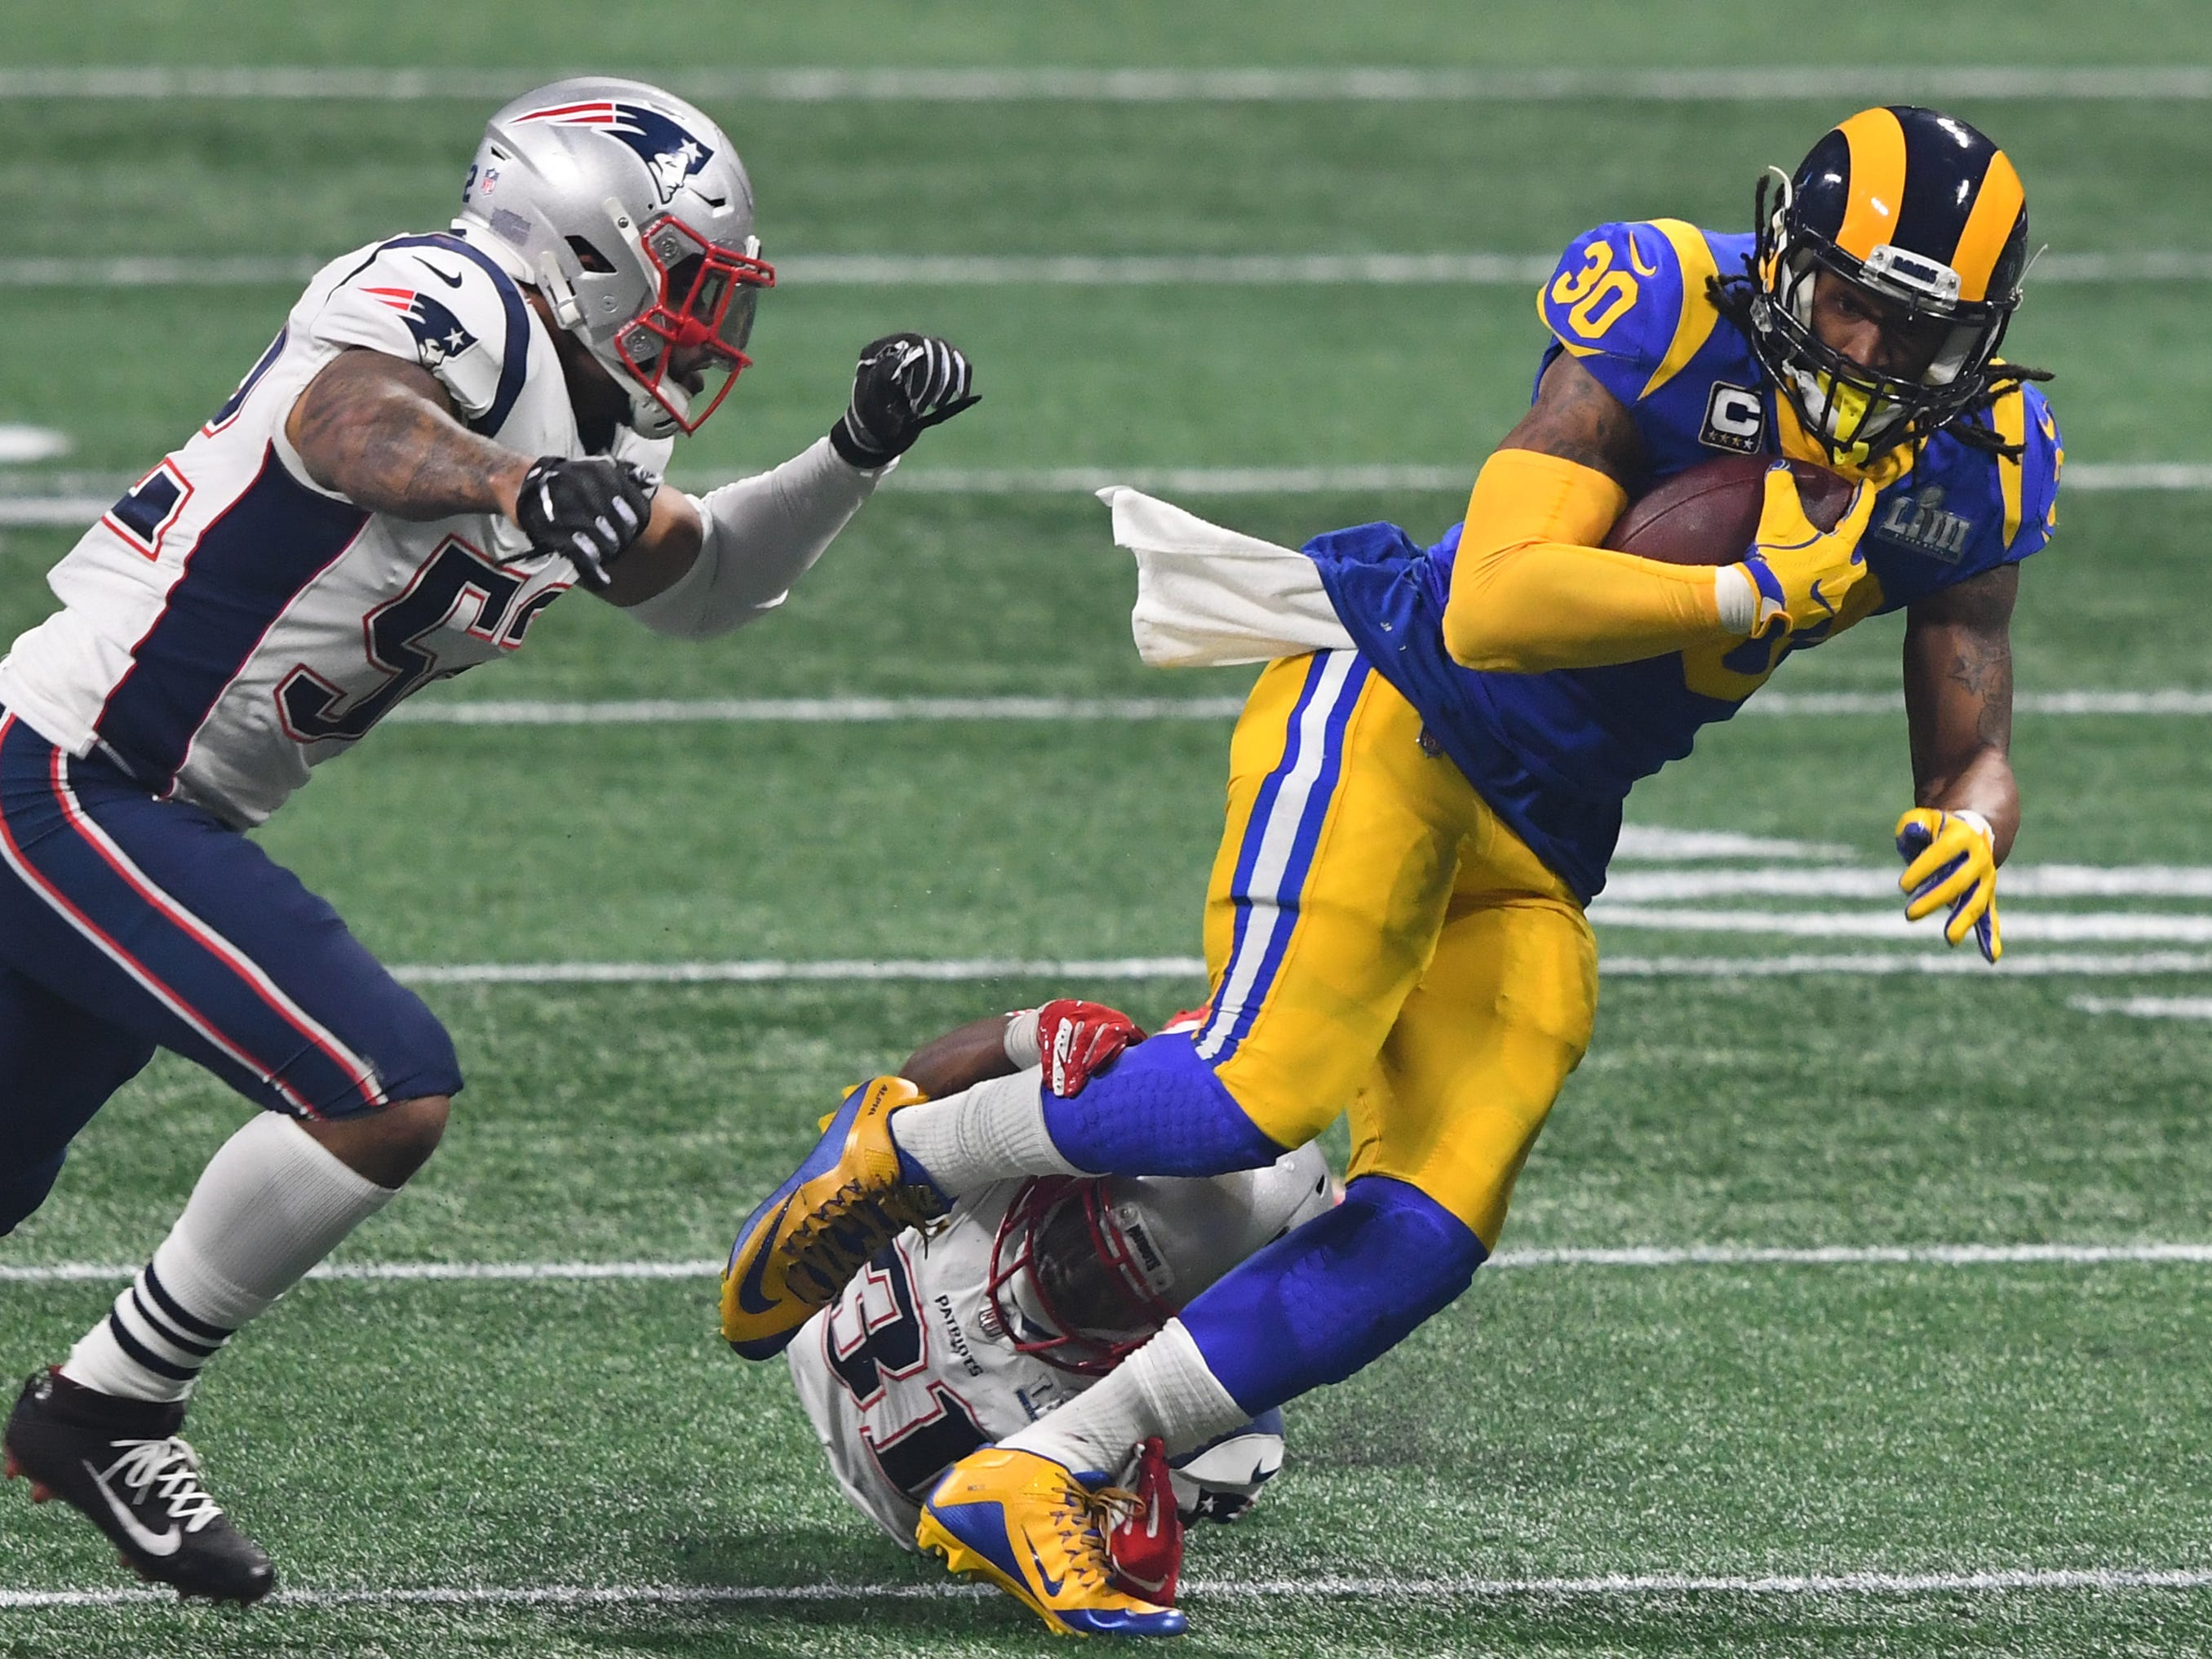 4. Rams (3): Great season. But Super Bowl flop, Todd Gurley mystery, Jared Goff's postseason struggles, non-call in New Orleans deservedly knock them down.